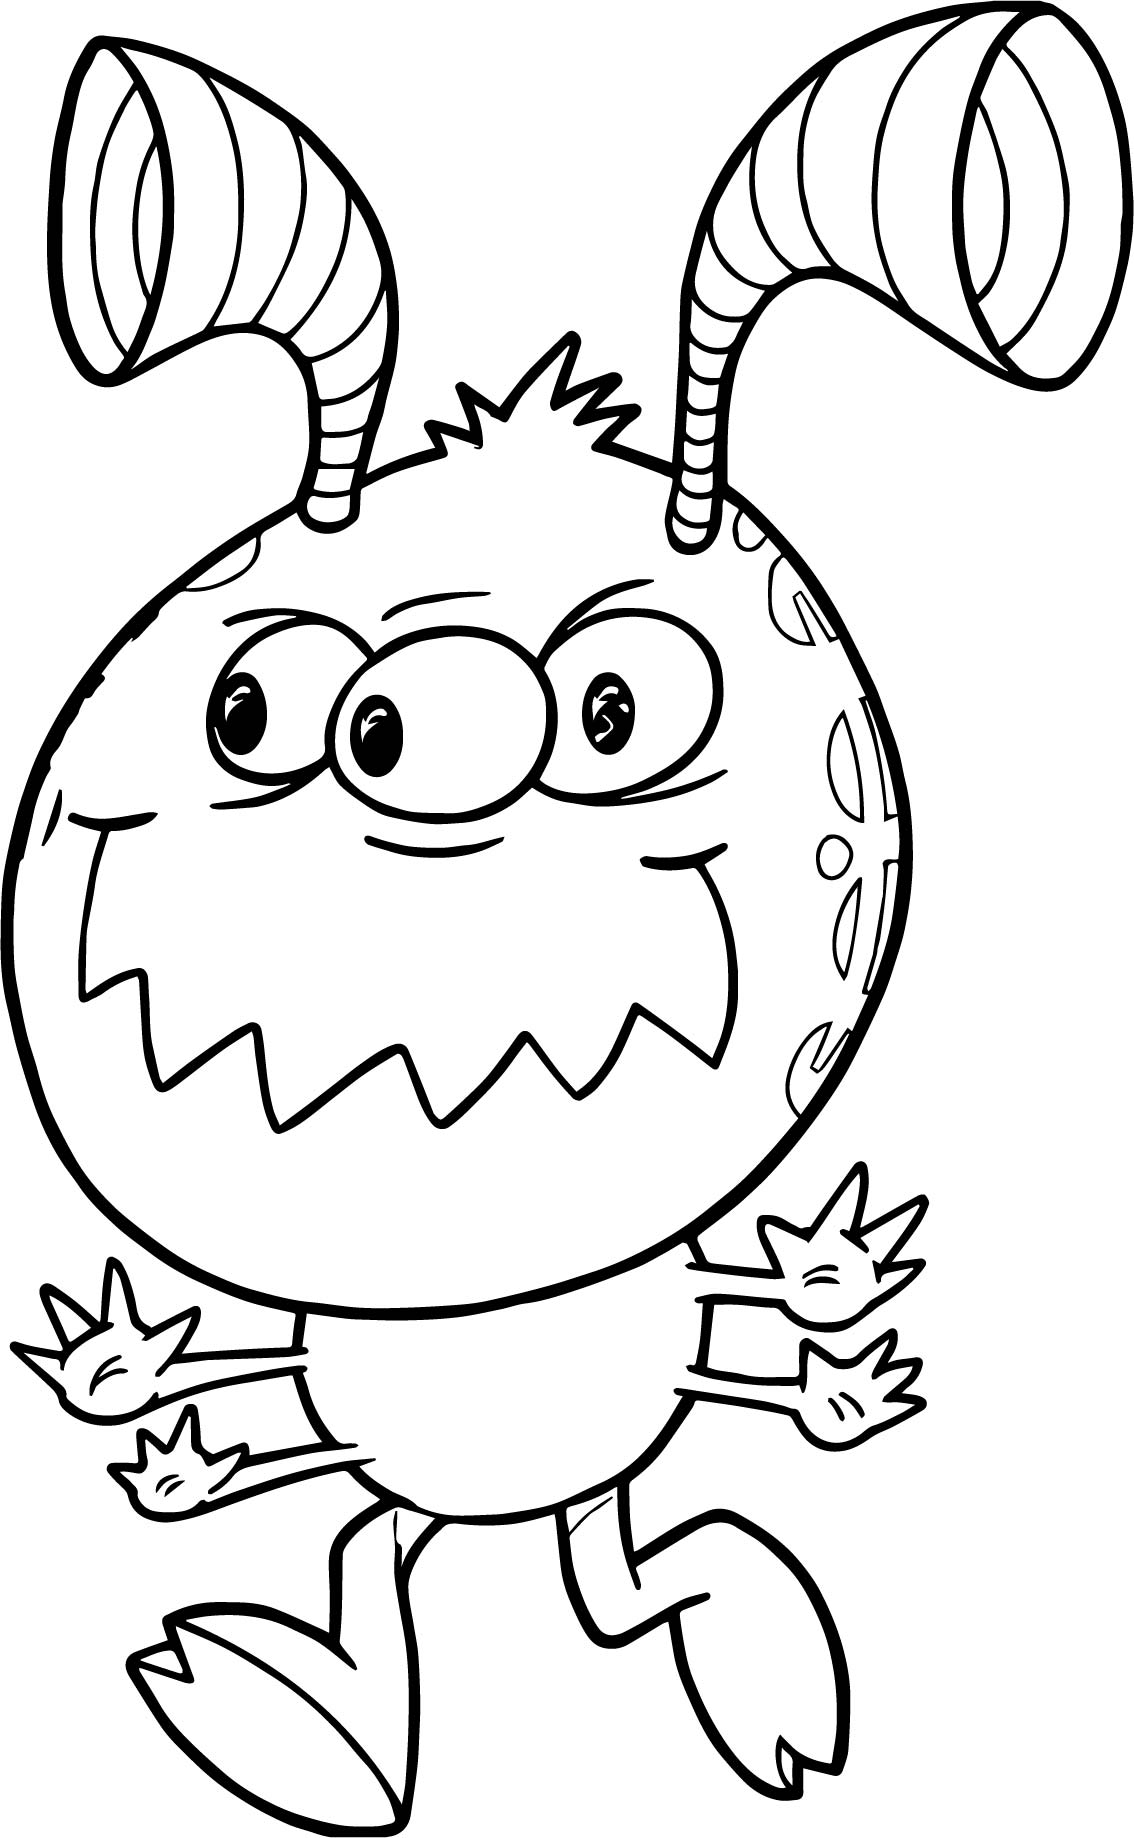 Alien Face Mask Coloring Page Coloring Pages